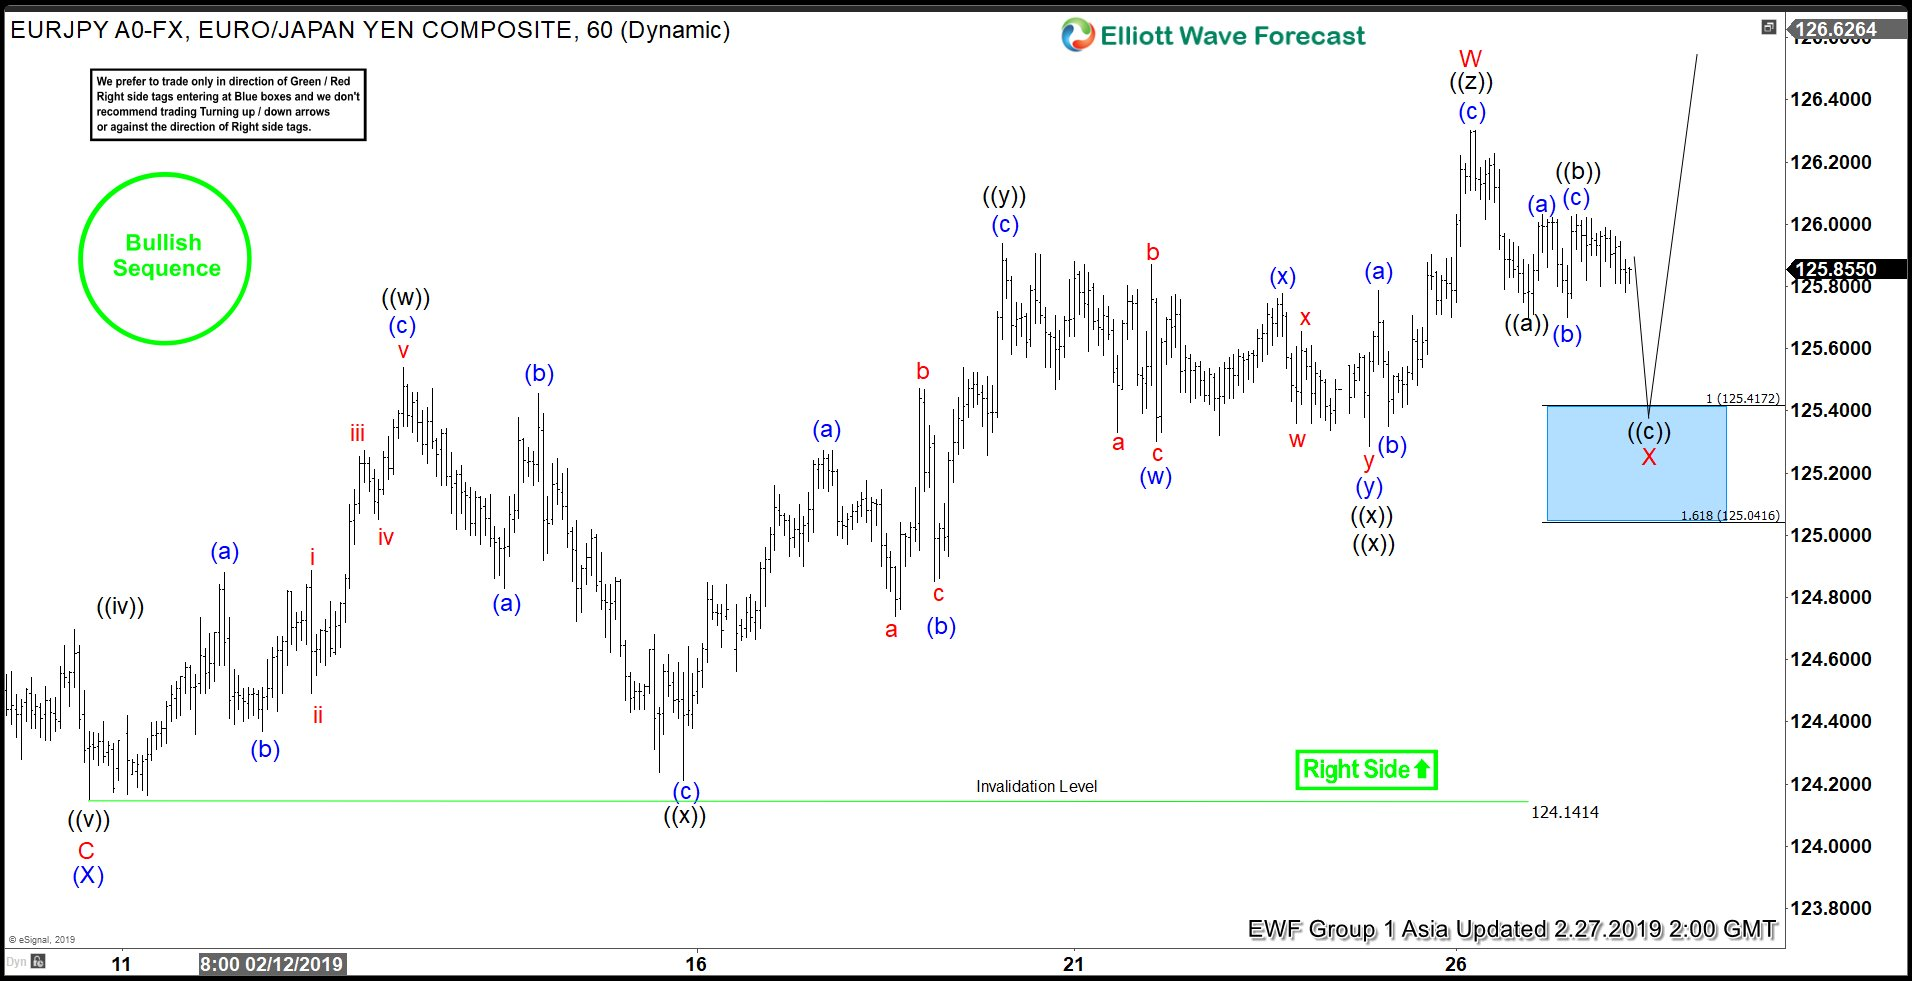 Elliott Wave View: EURJPY Rally Should Resume